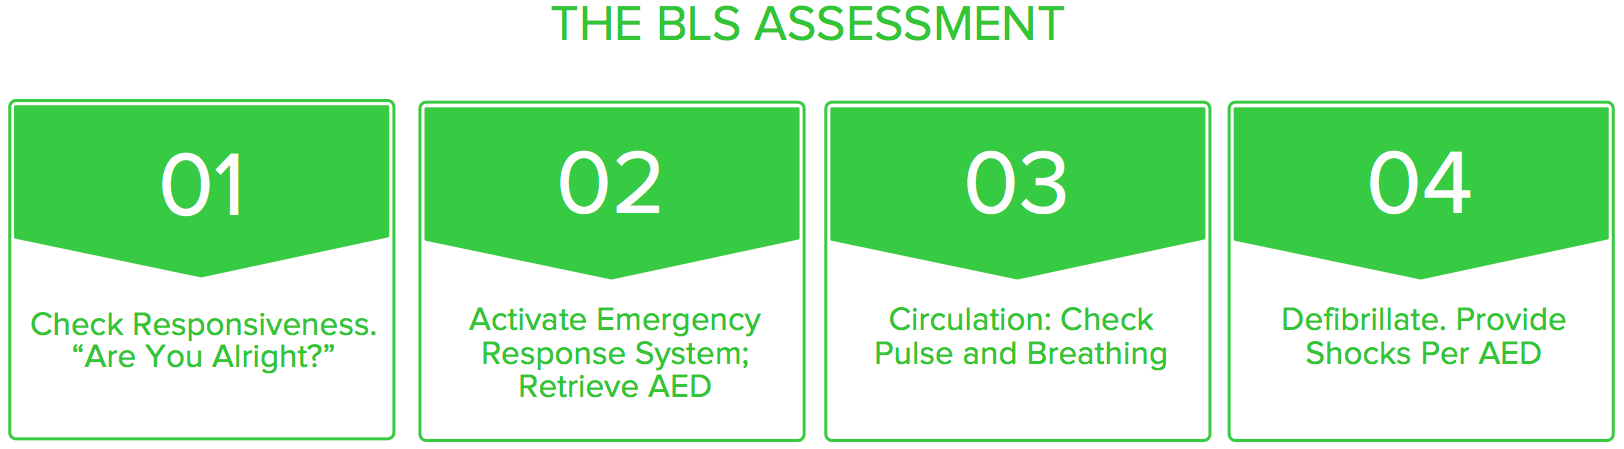 BLS assessment